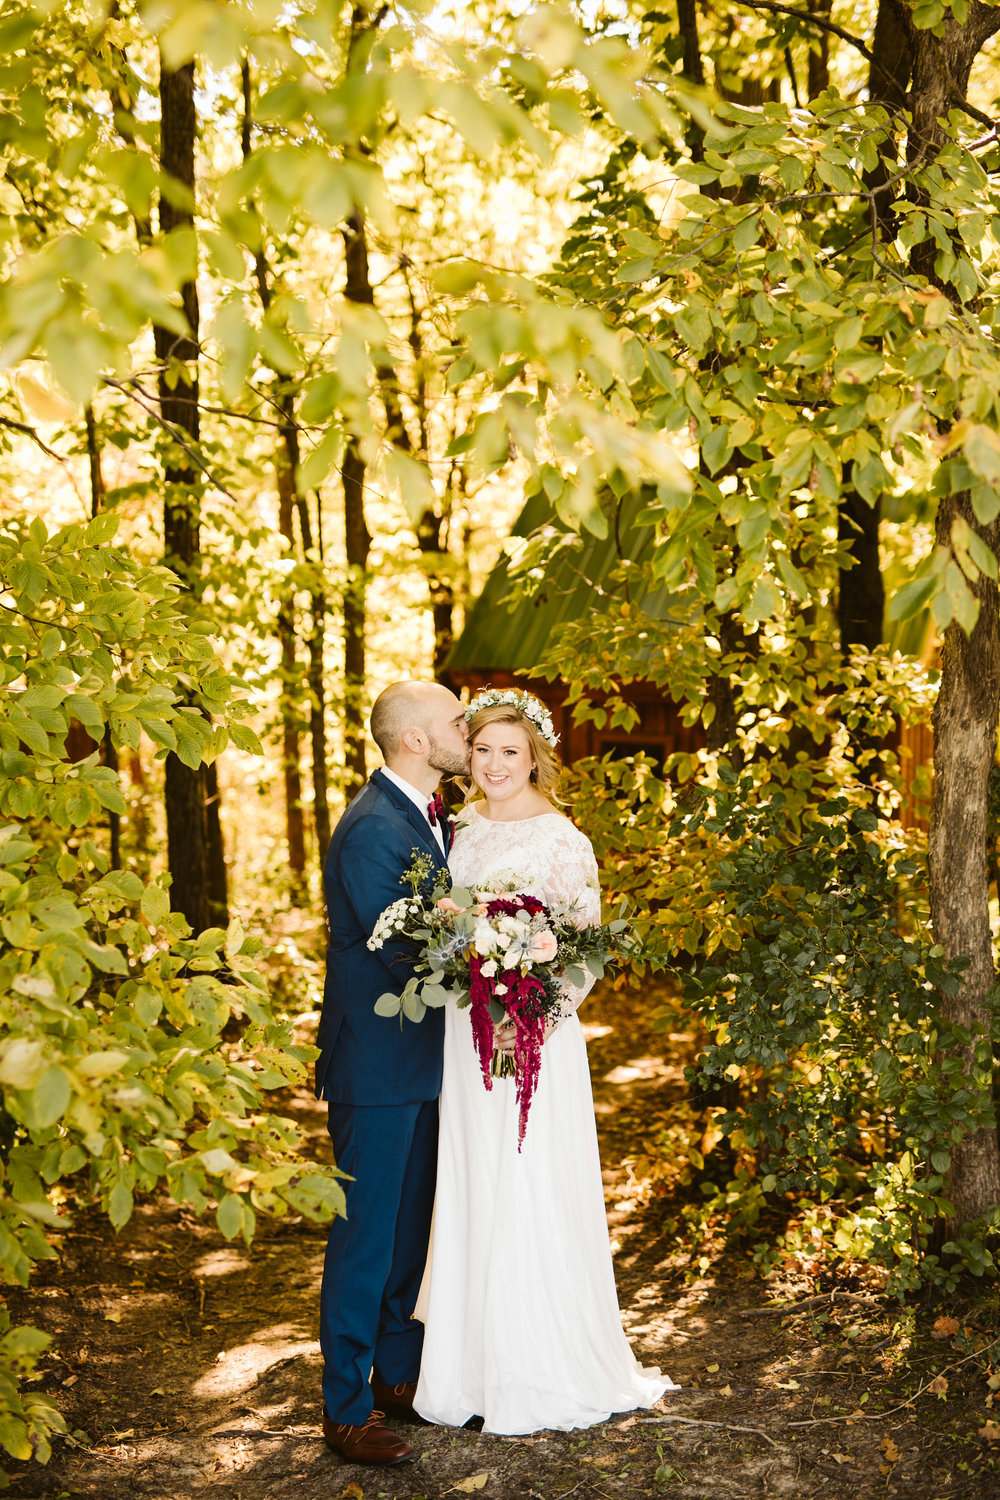 Chaska Minnesota Wedding Venue - The Outpost Center-127.jpg